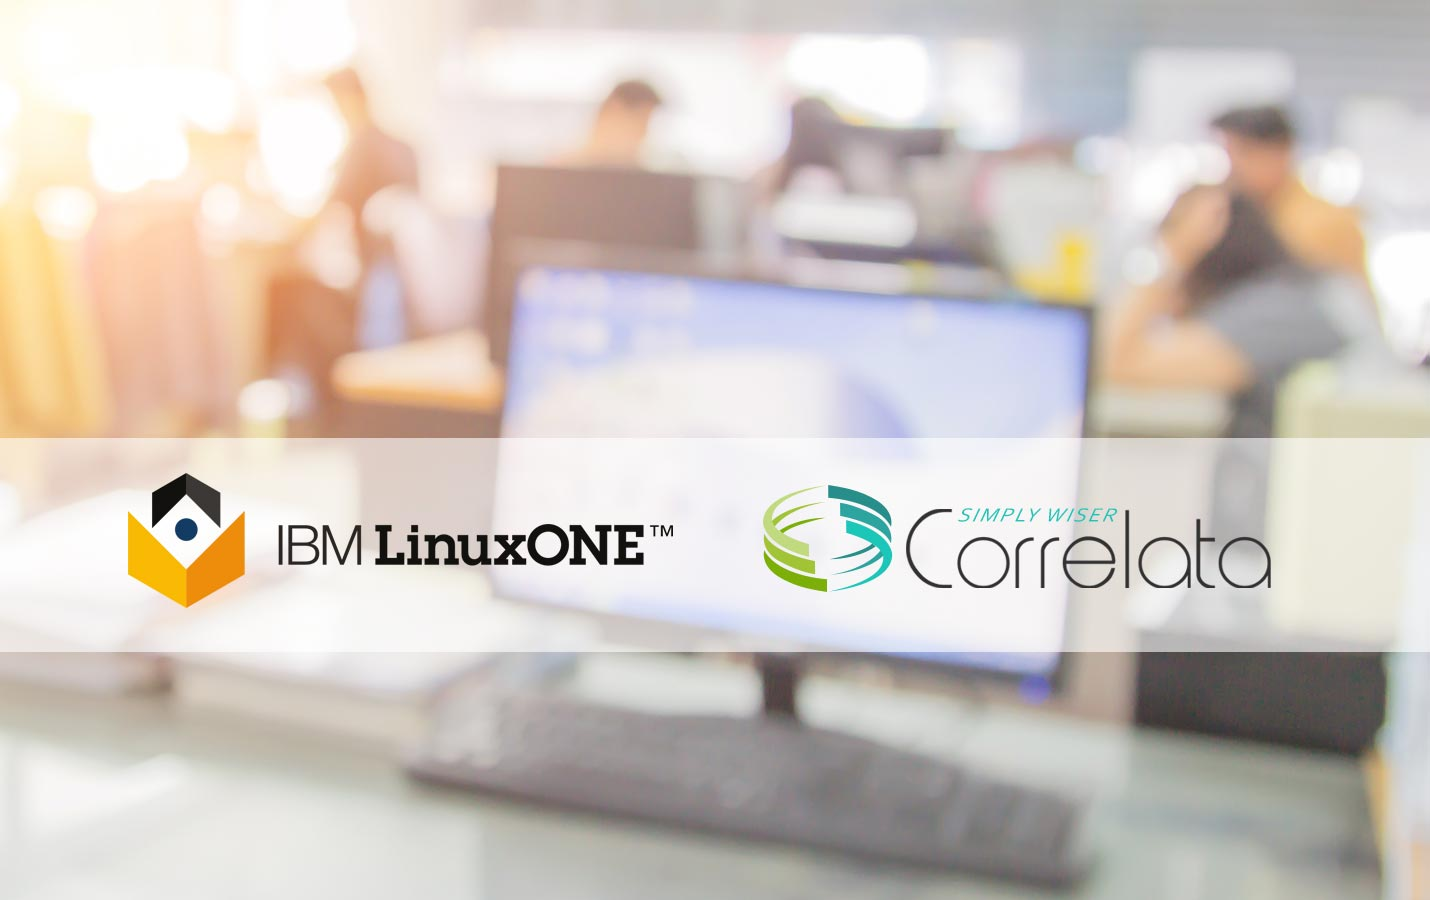 Correlata Solutions Completes Installation on IBM LinuxONE in North America